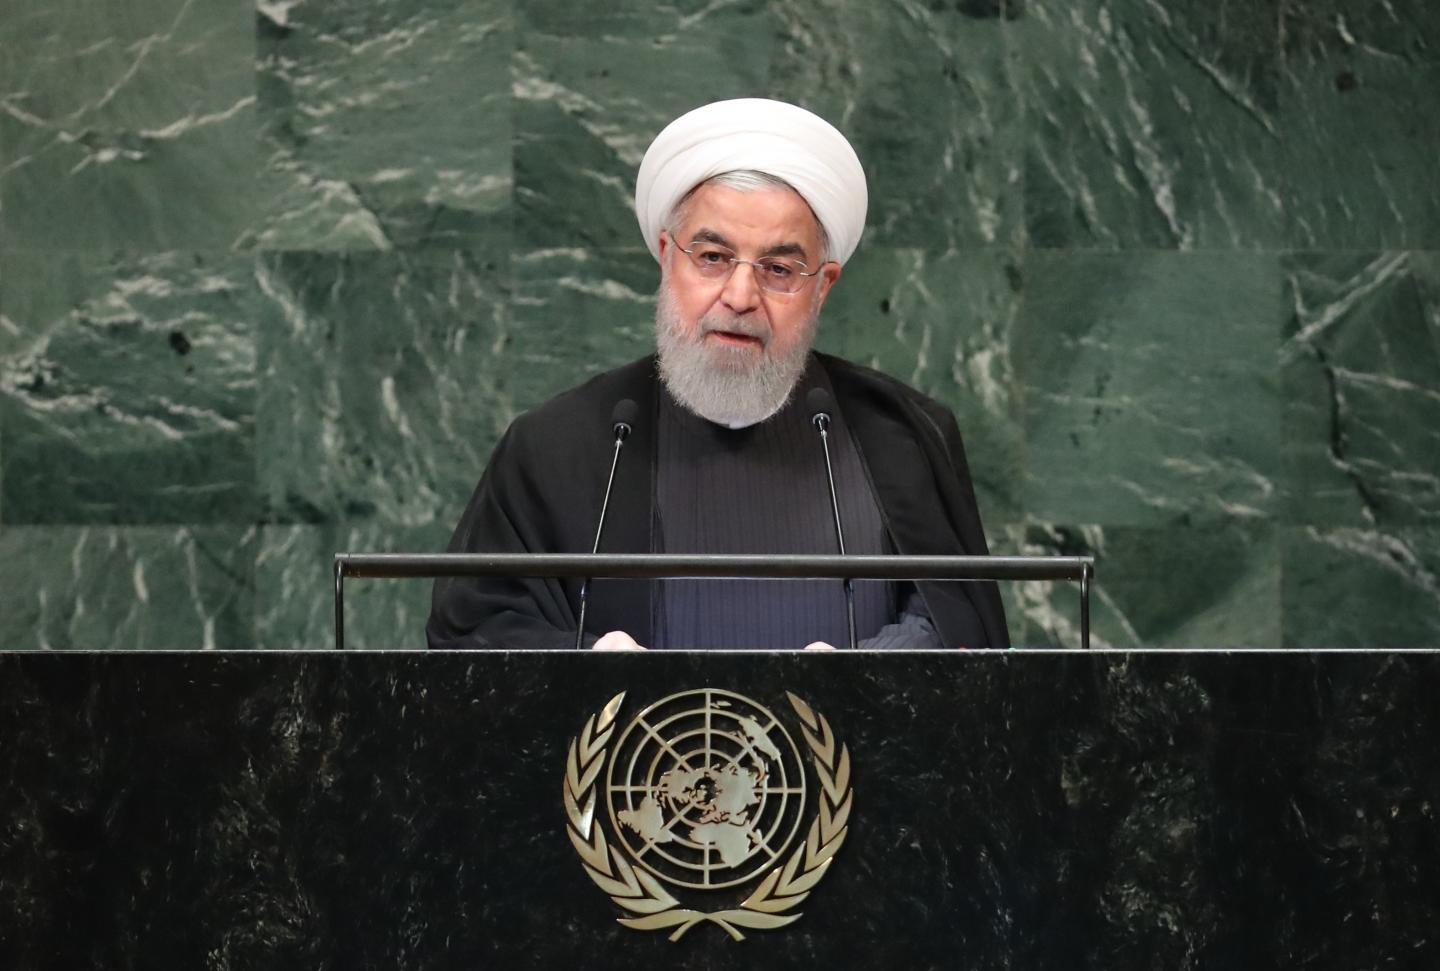 Iran fires back at Trump: 'Xenophobic tendencies resembling a Nazi disposition' https://t.co/FV5zQJNDEh https://t.co/Nj1fNnDLcO